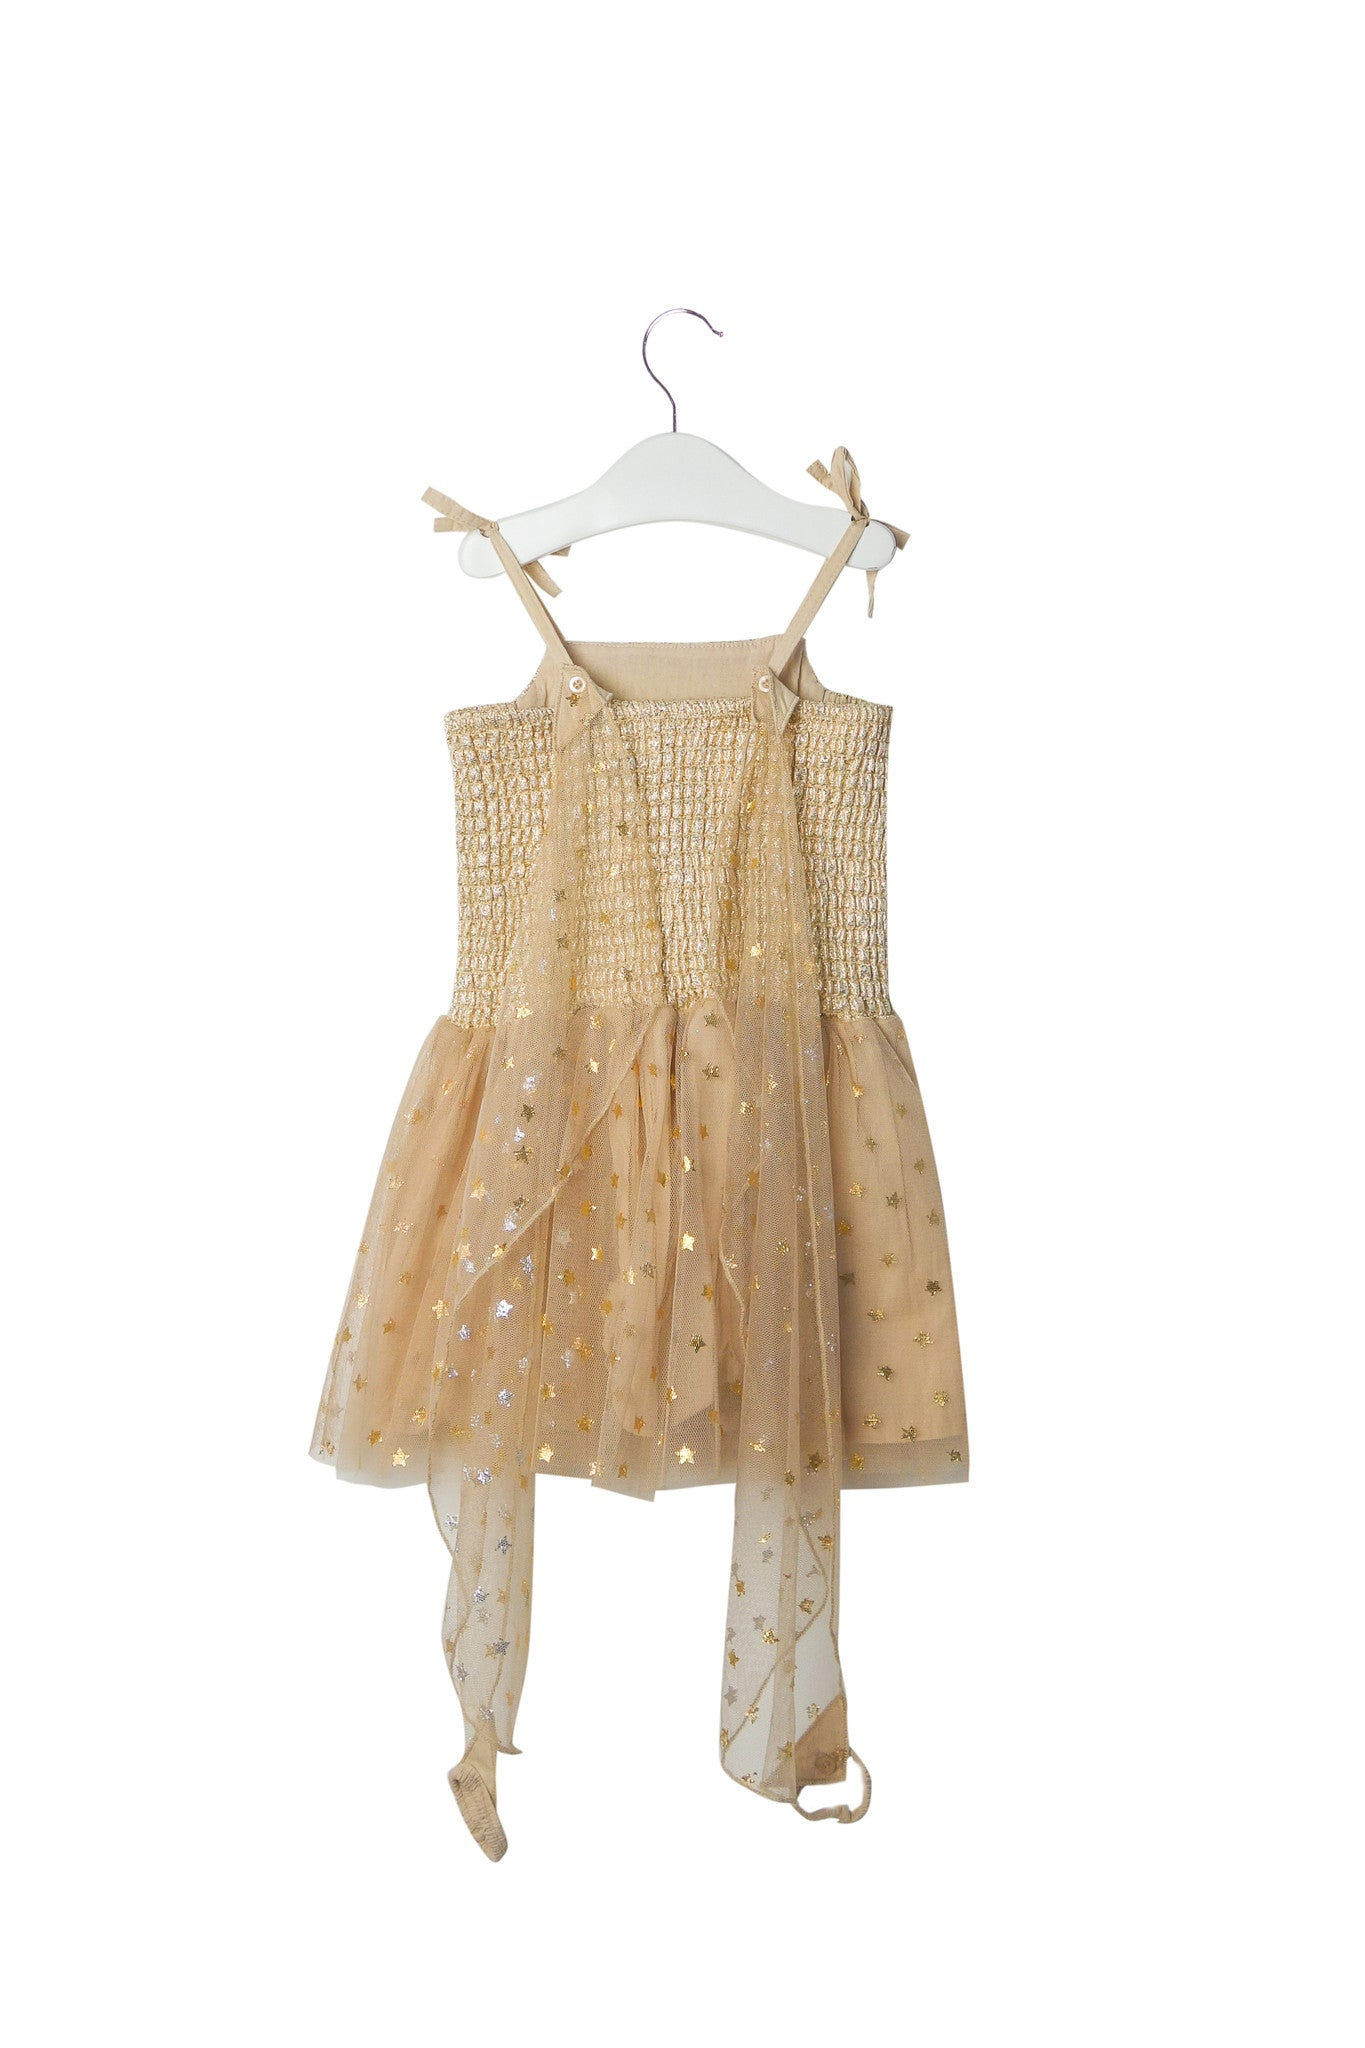 10003034 Seed Baby~Dress 1-2T at Retykle